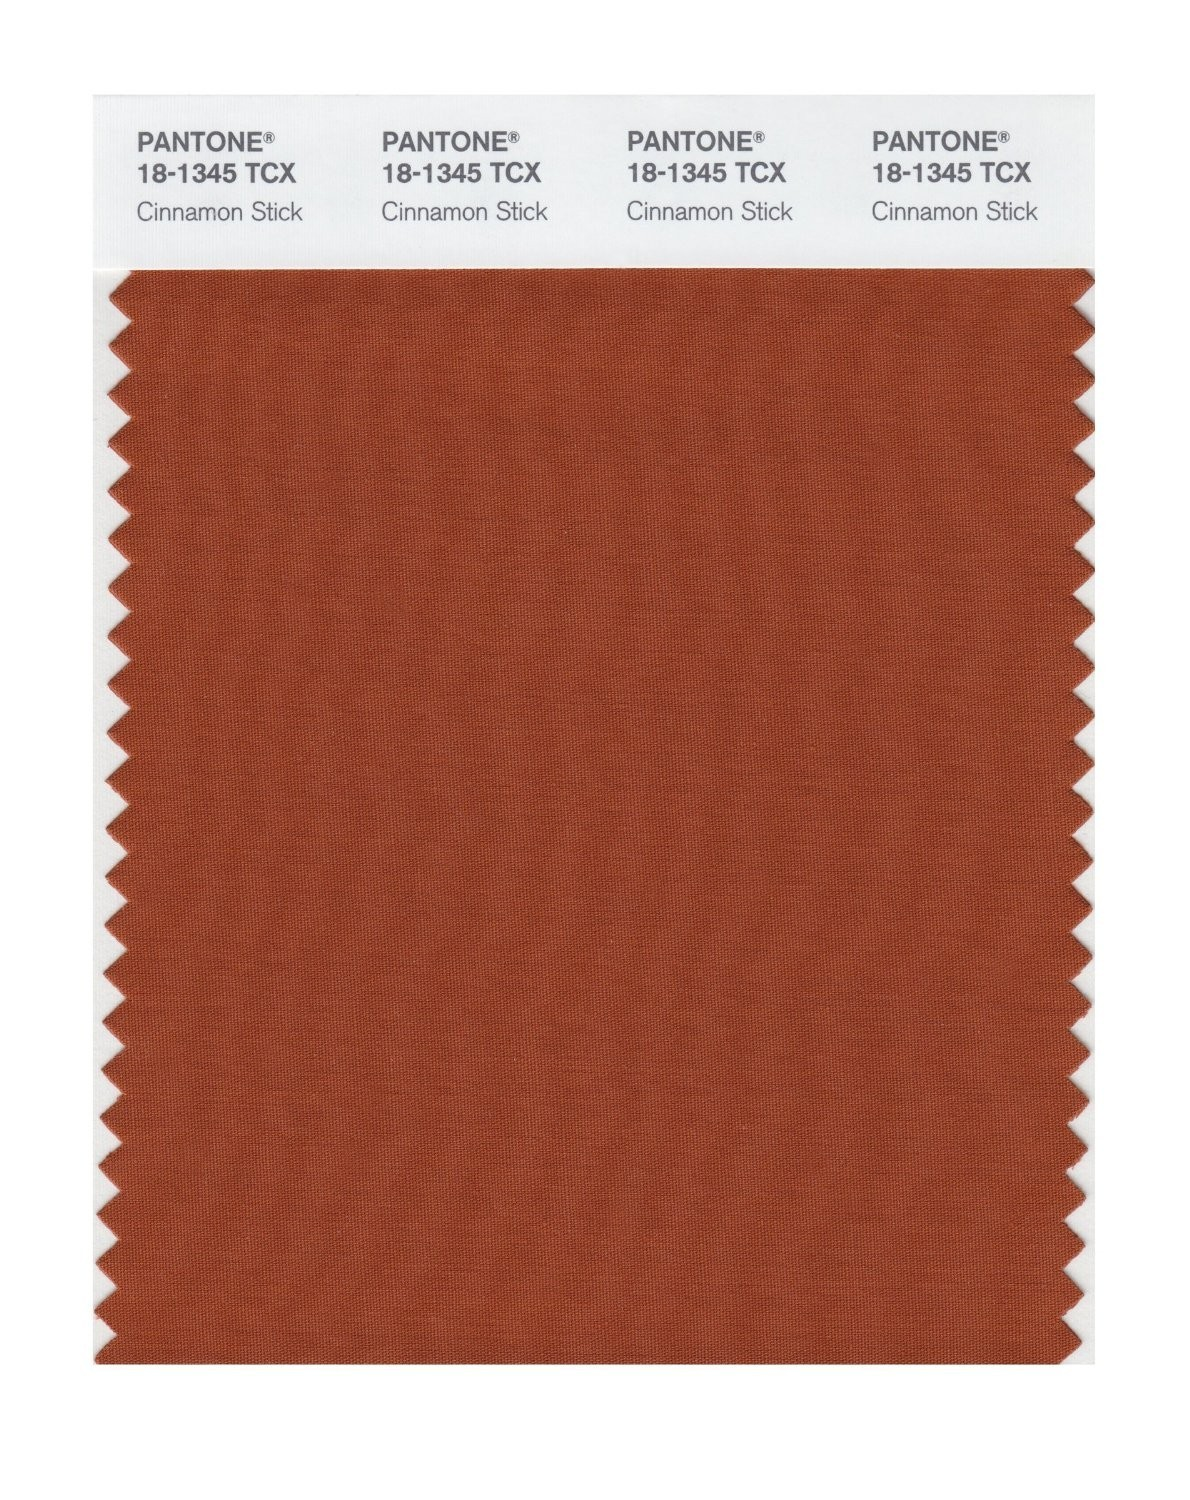 Pantone 18-1345 TCX Swatch Card Cinnamon Stick